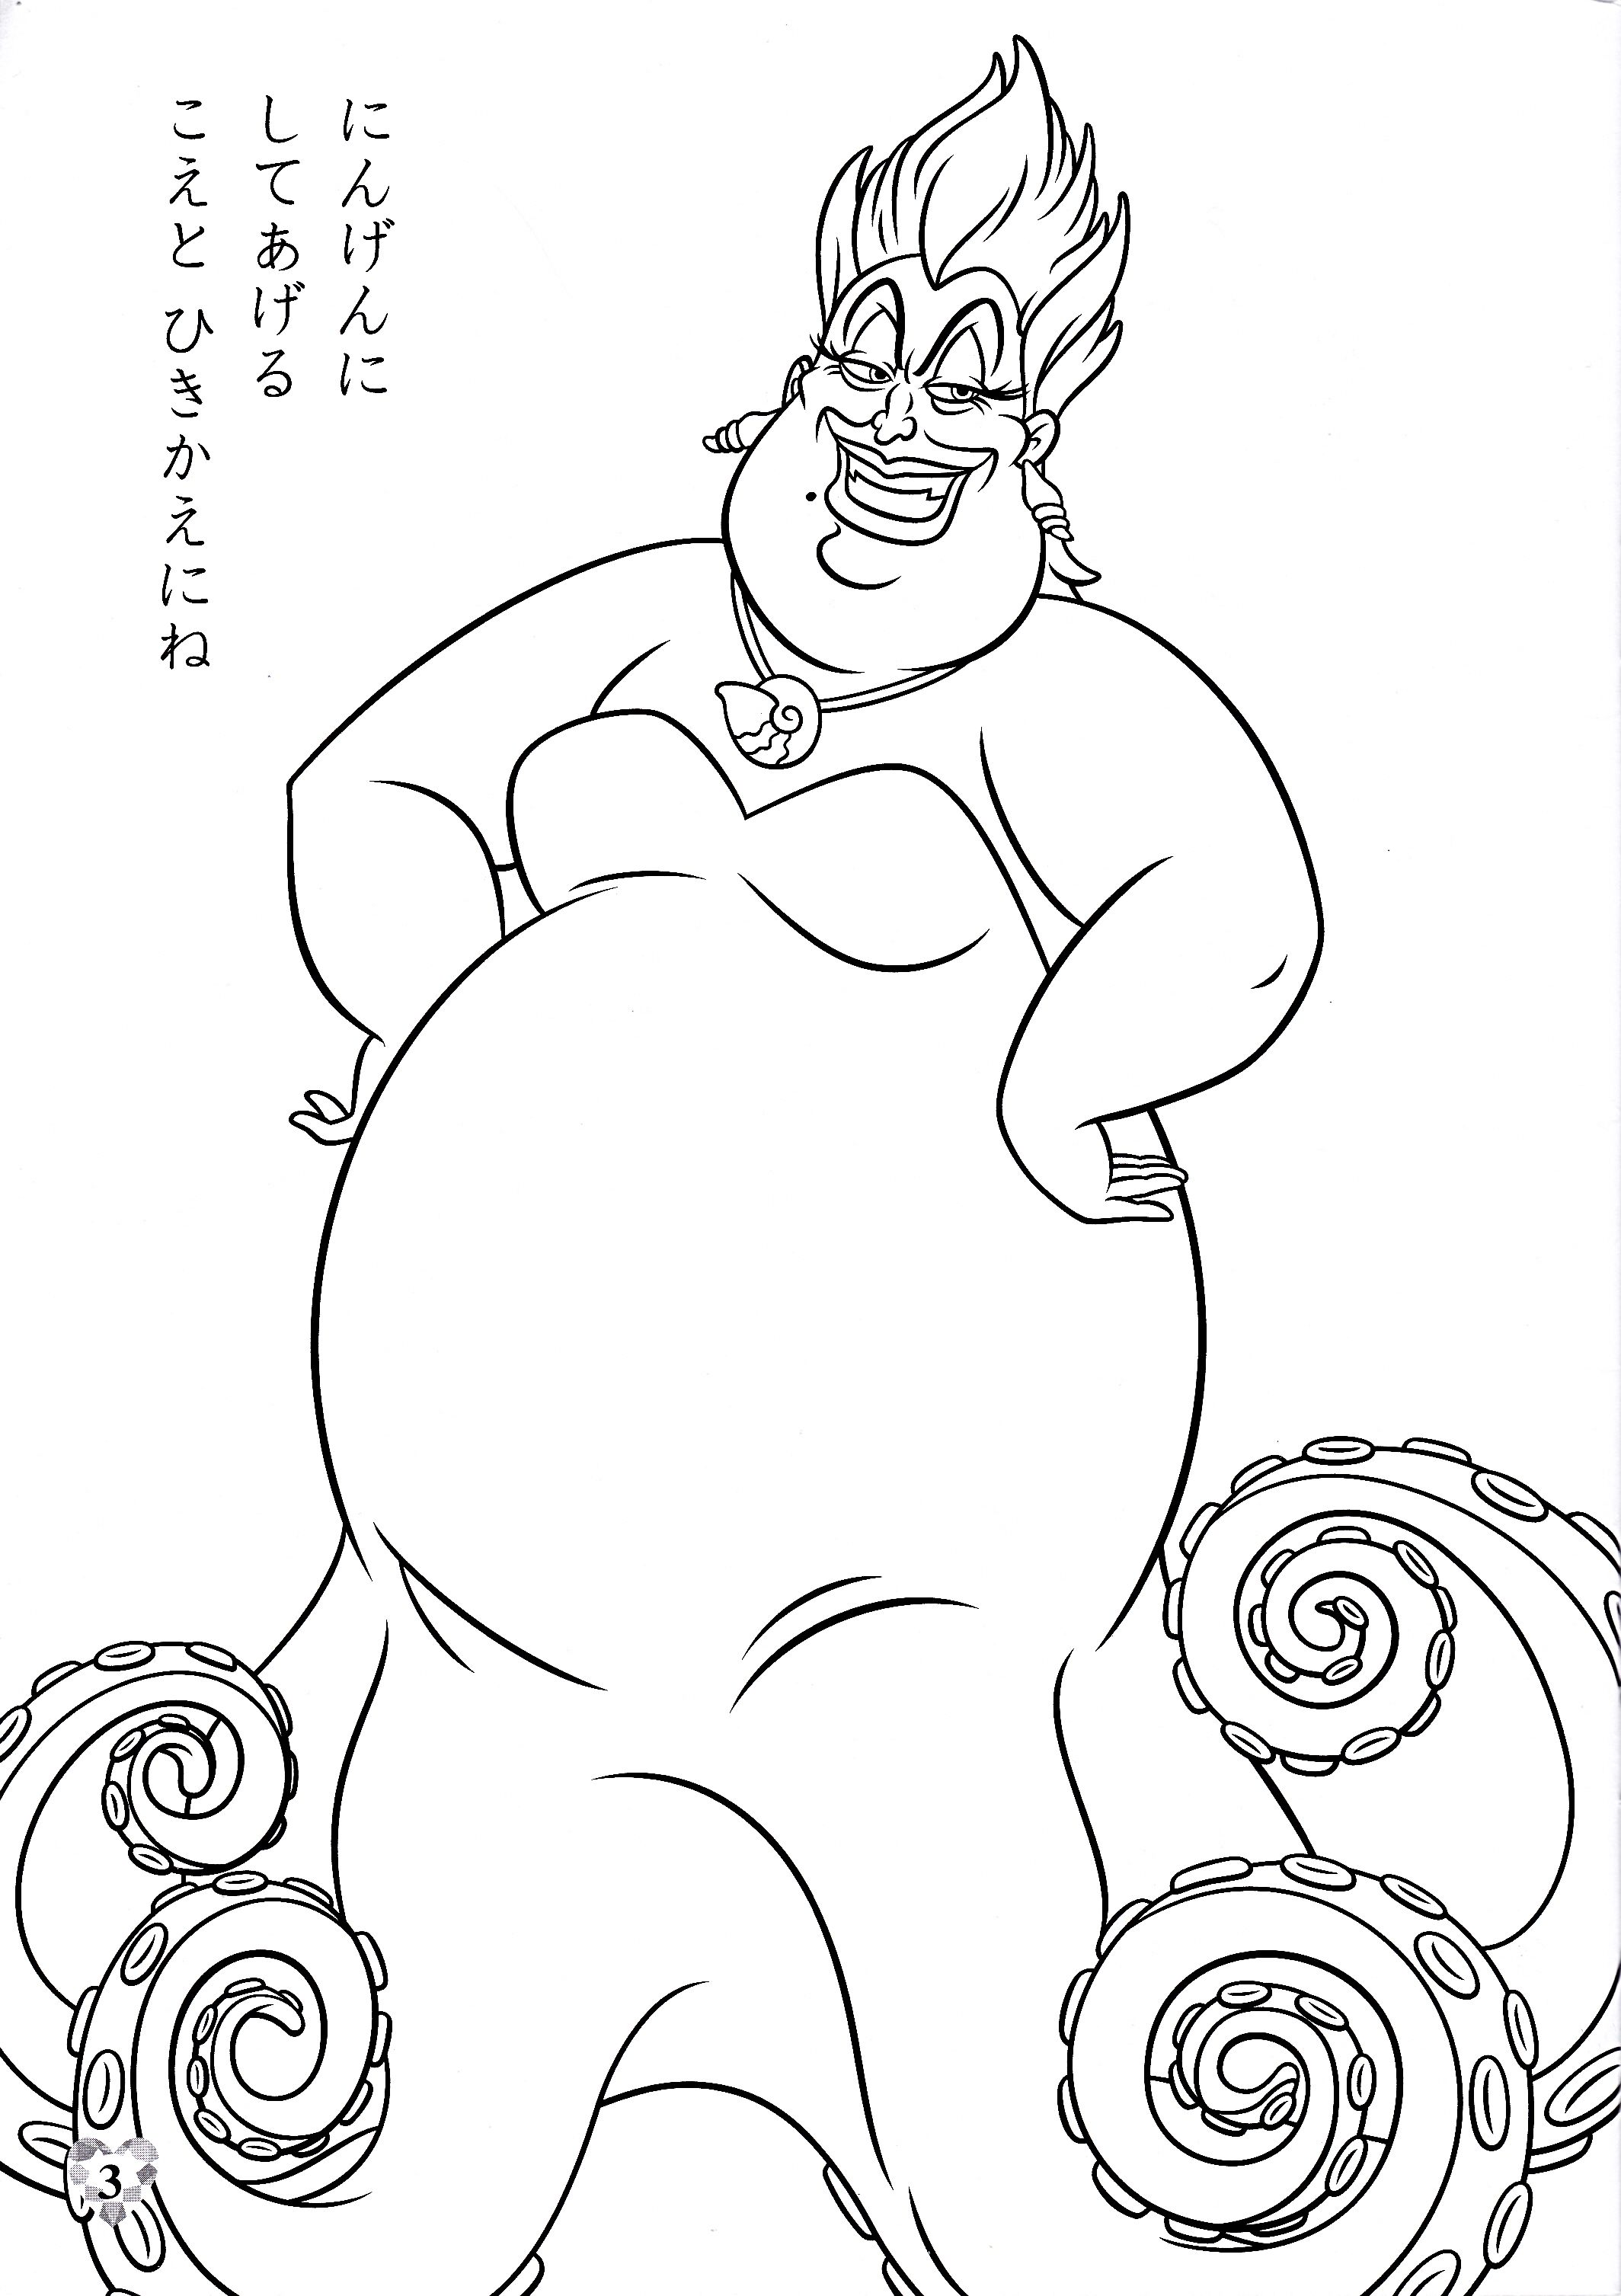 ursula coloring pages (With images) Mermaid coloring